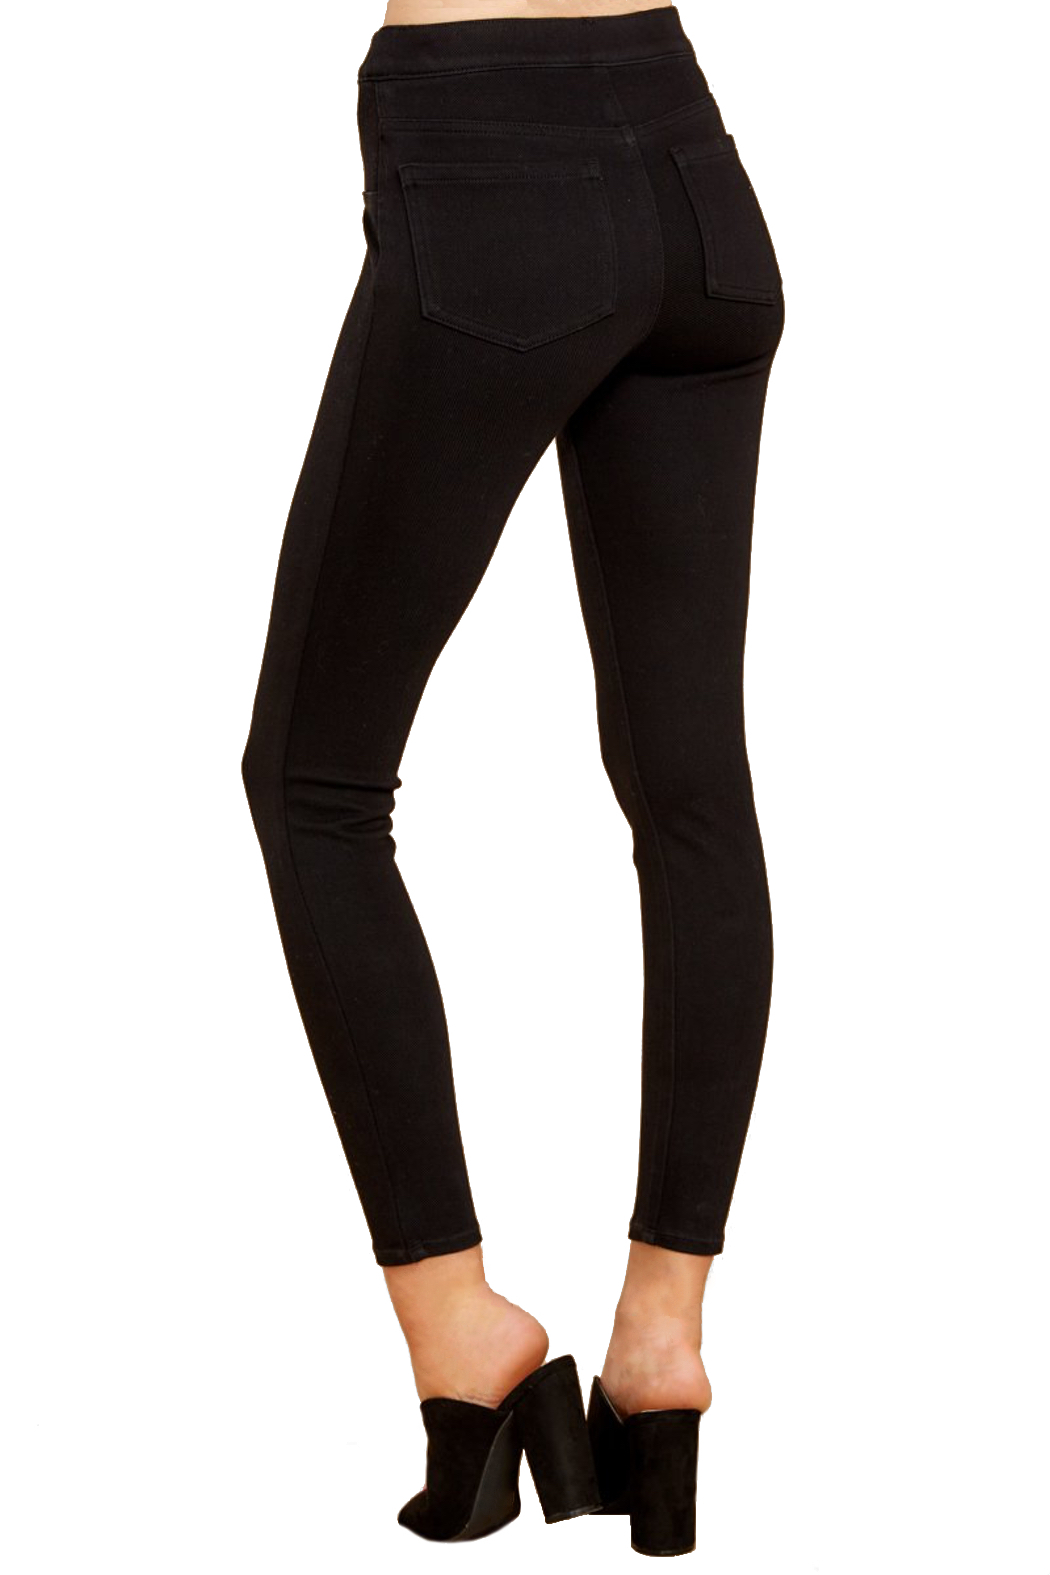 Spanx Jean-ish Ankle Leggings - Back Cropped Image